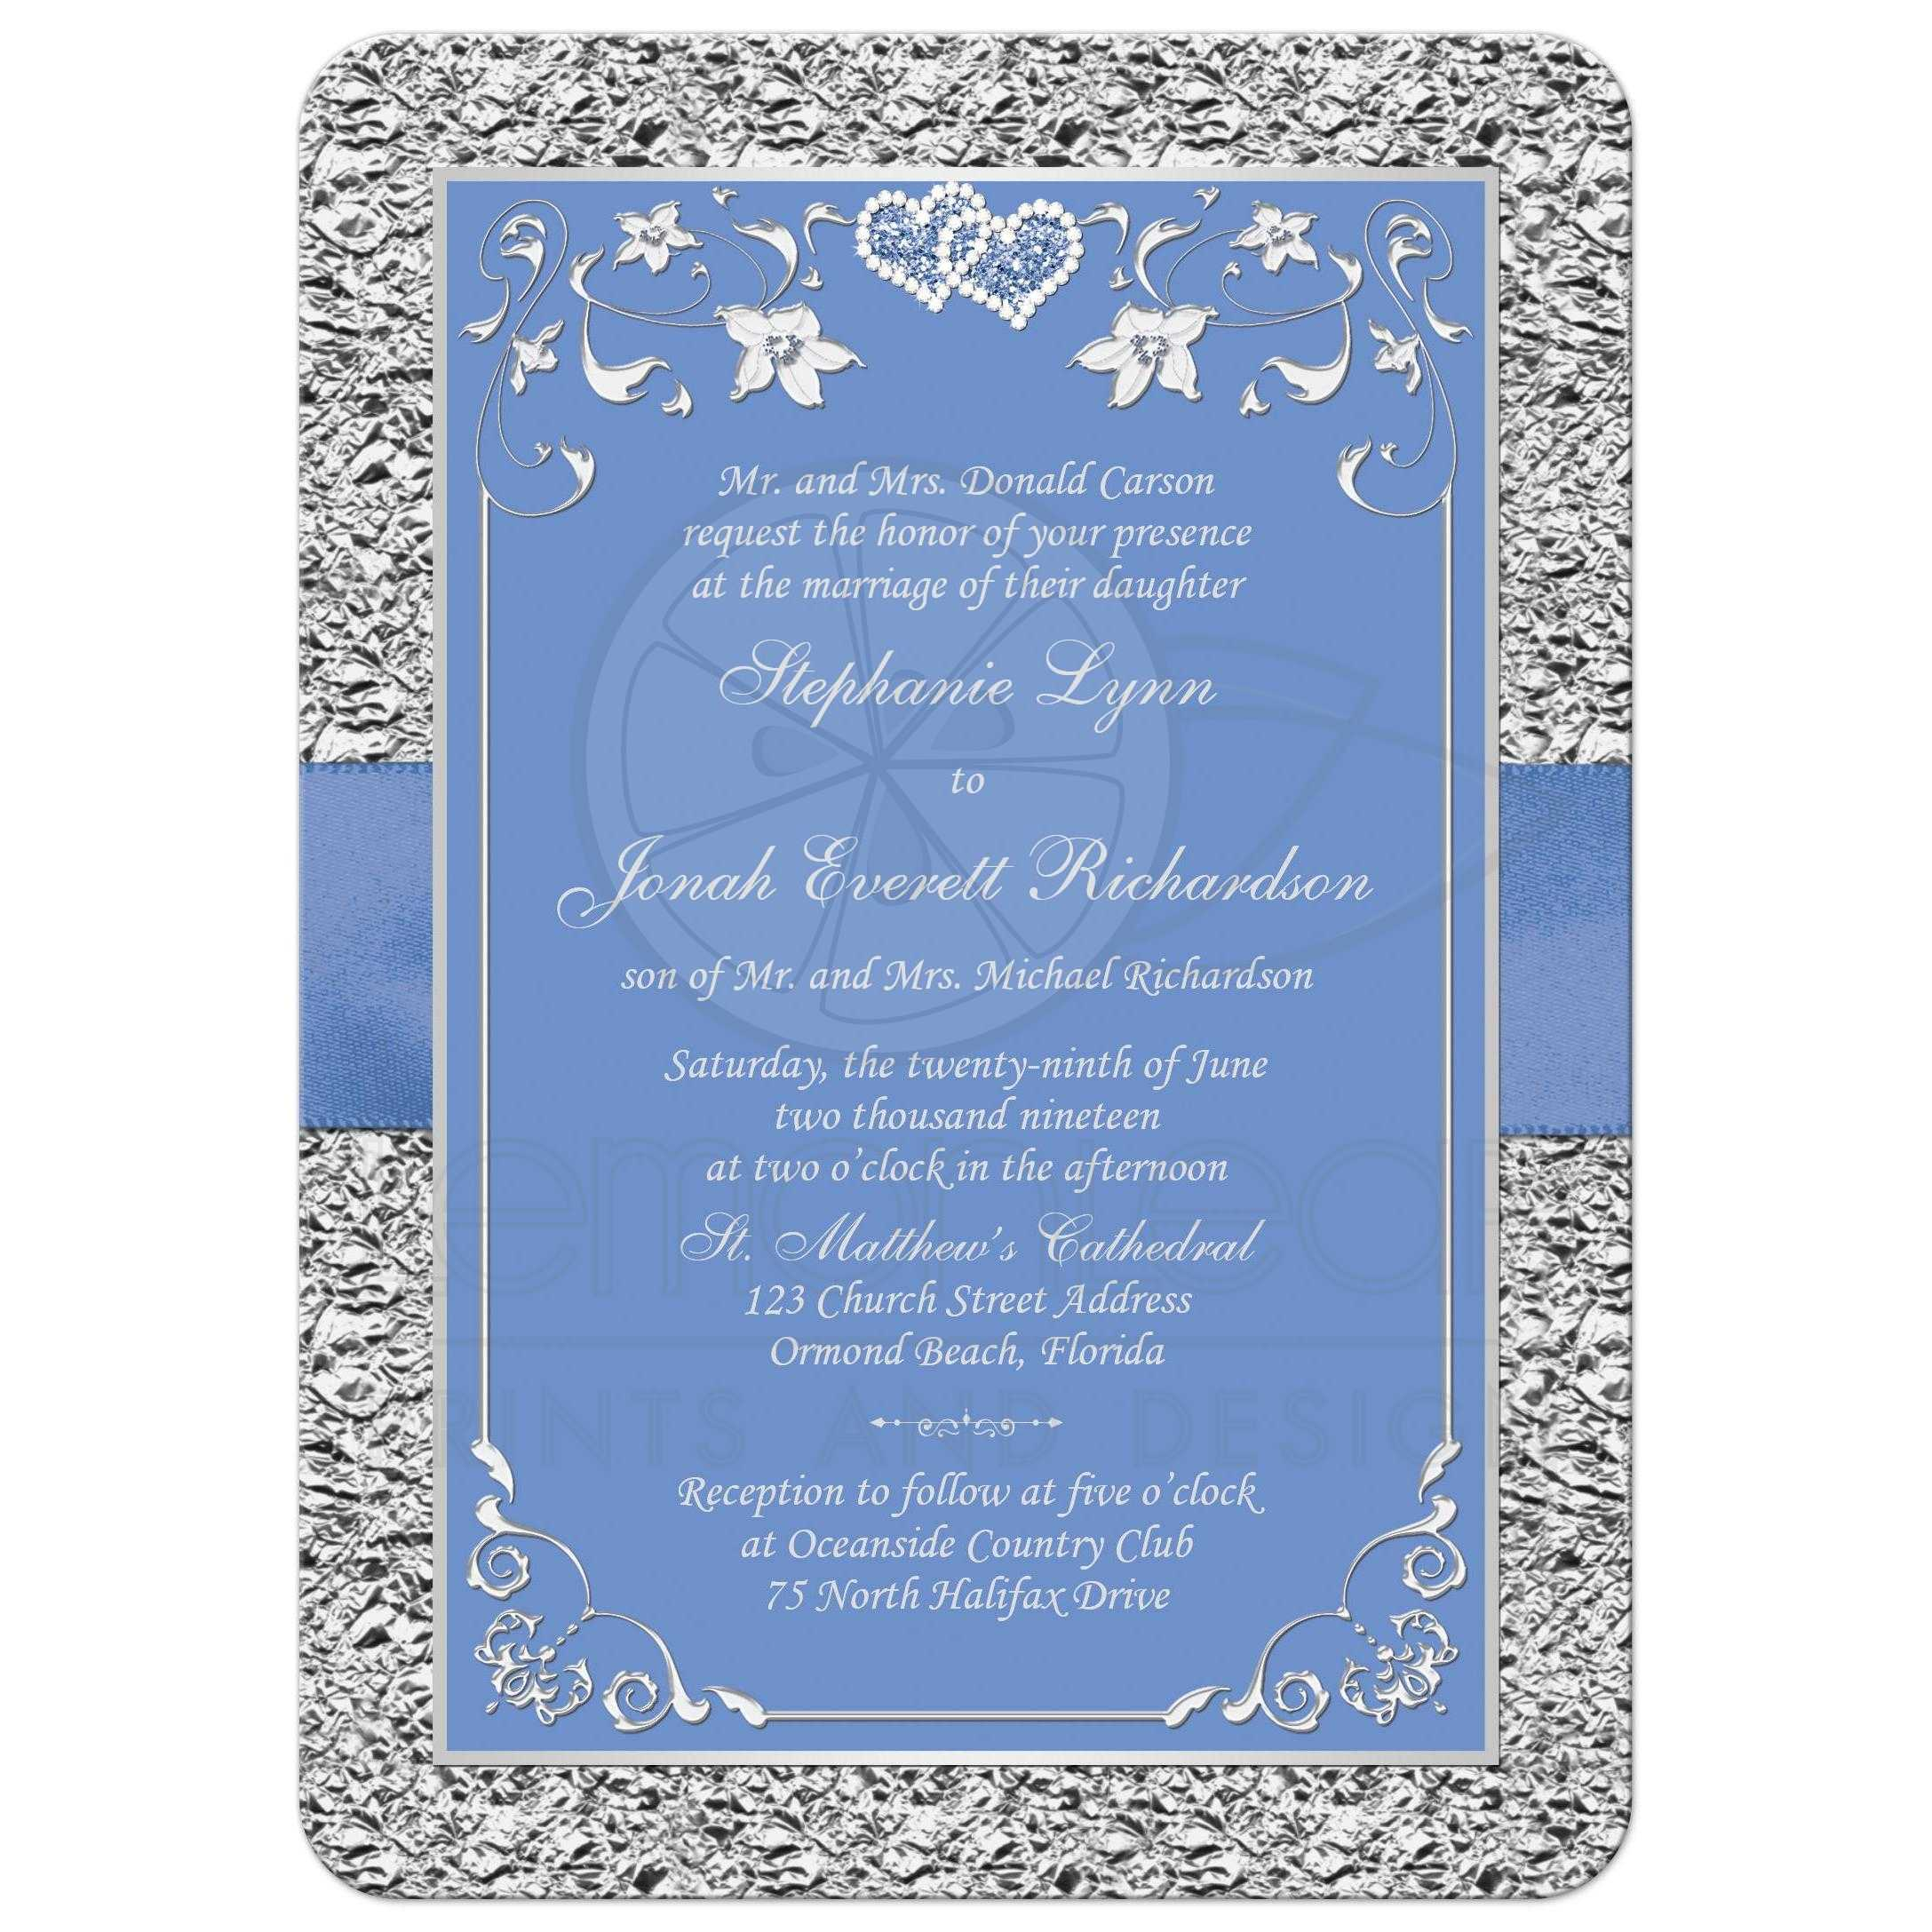 Cornflower Blue and Silver Gray Floral Wedding Invitation | PRINTED ...